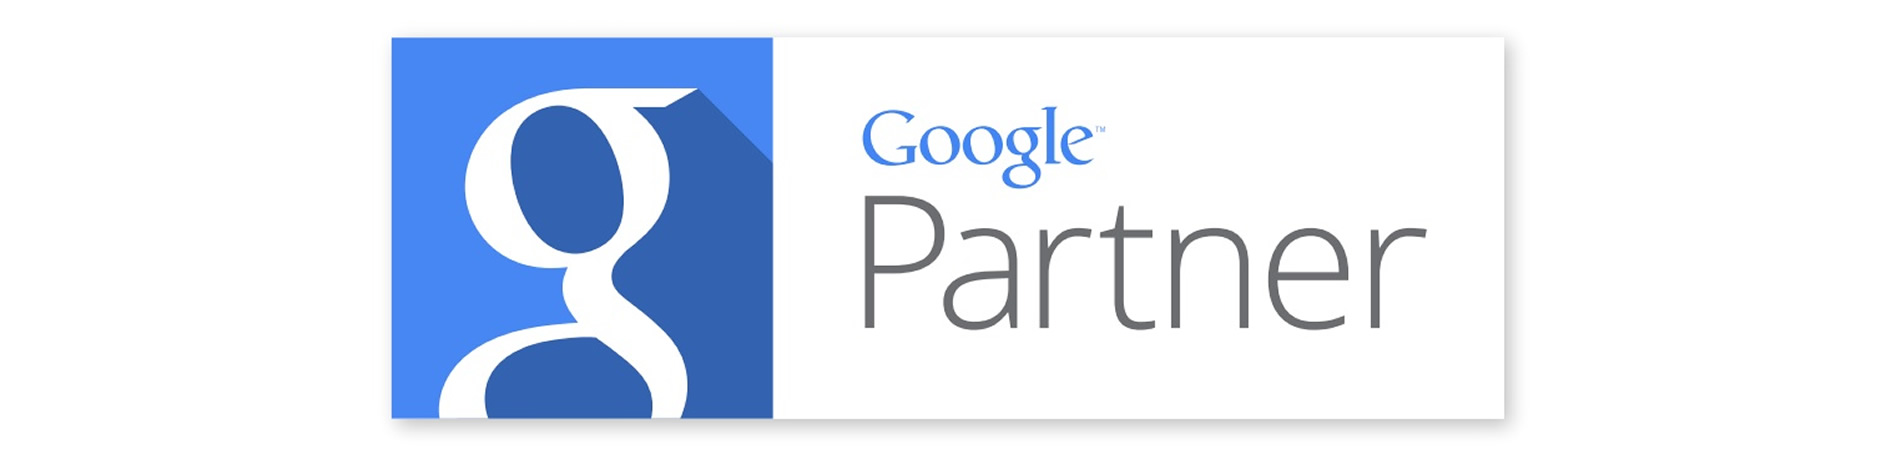 Google-Partner-Logo-Horizontal-large